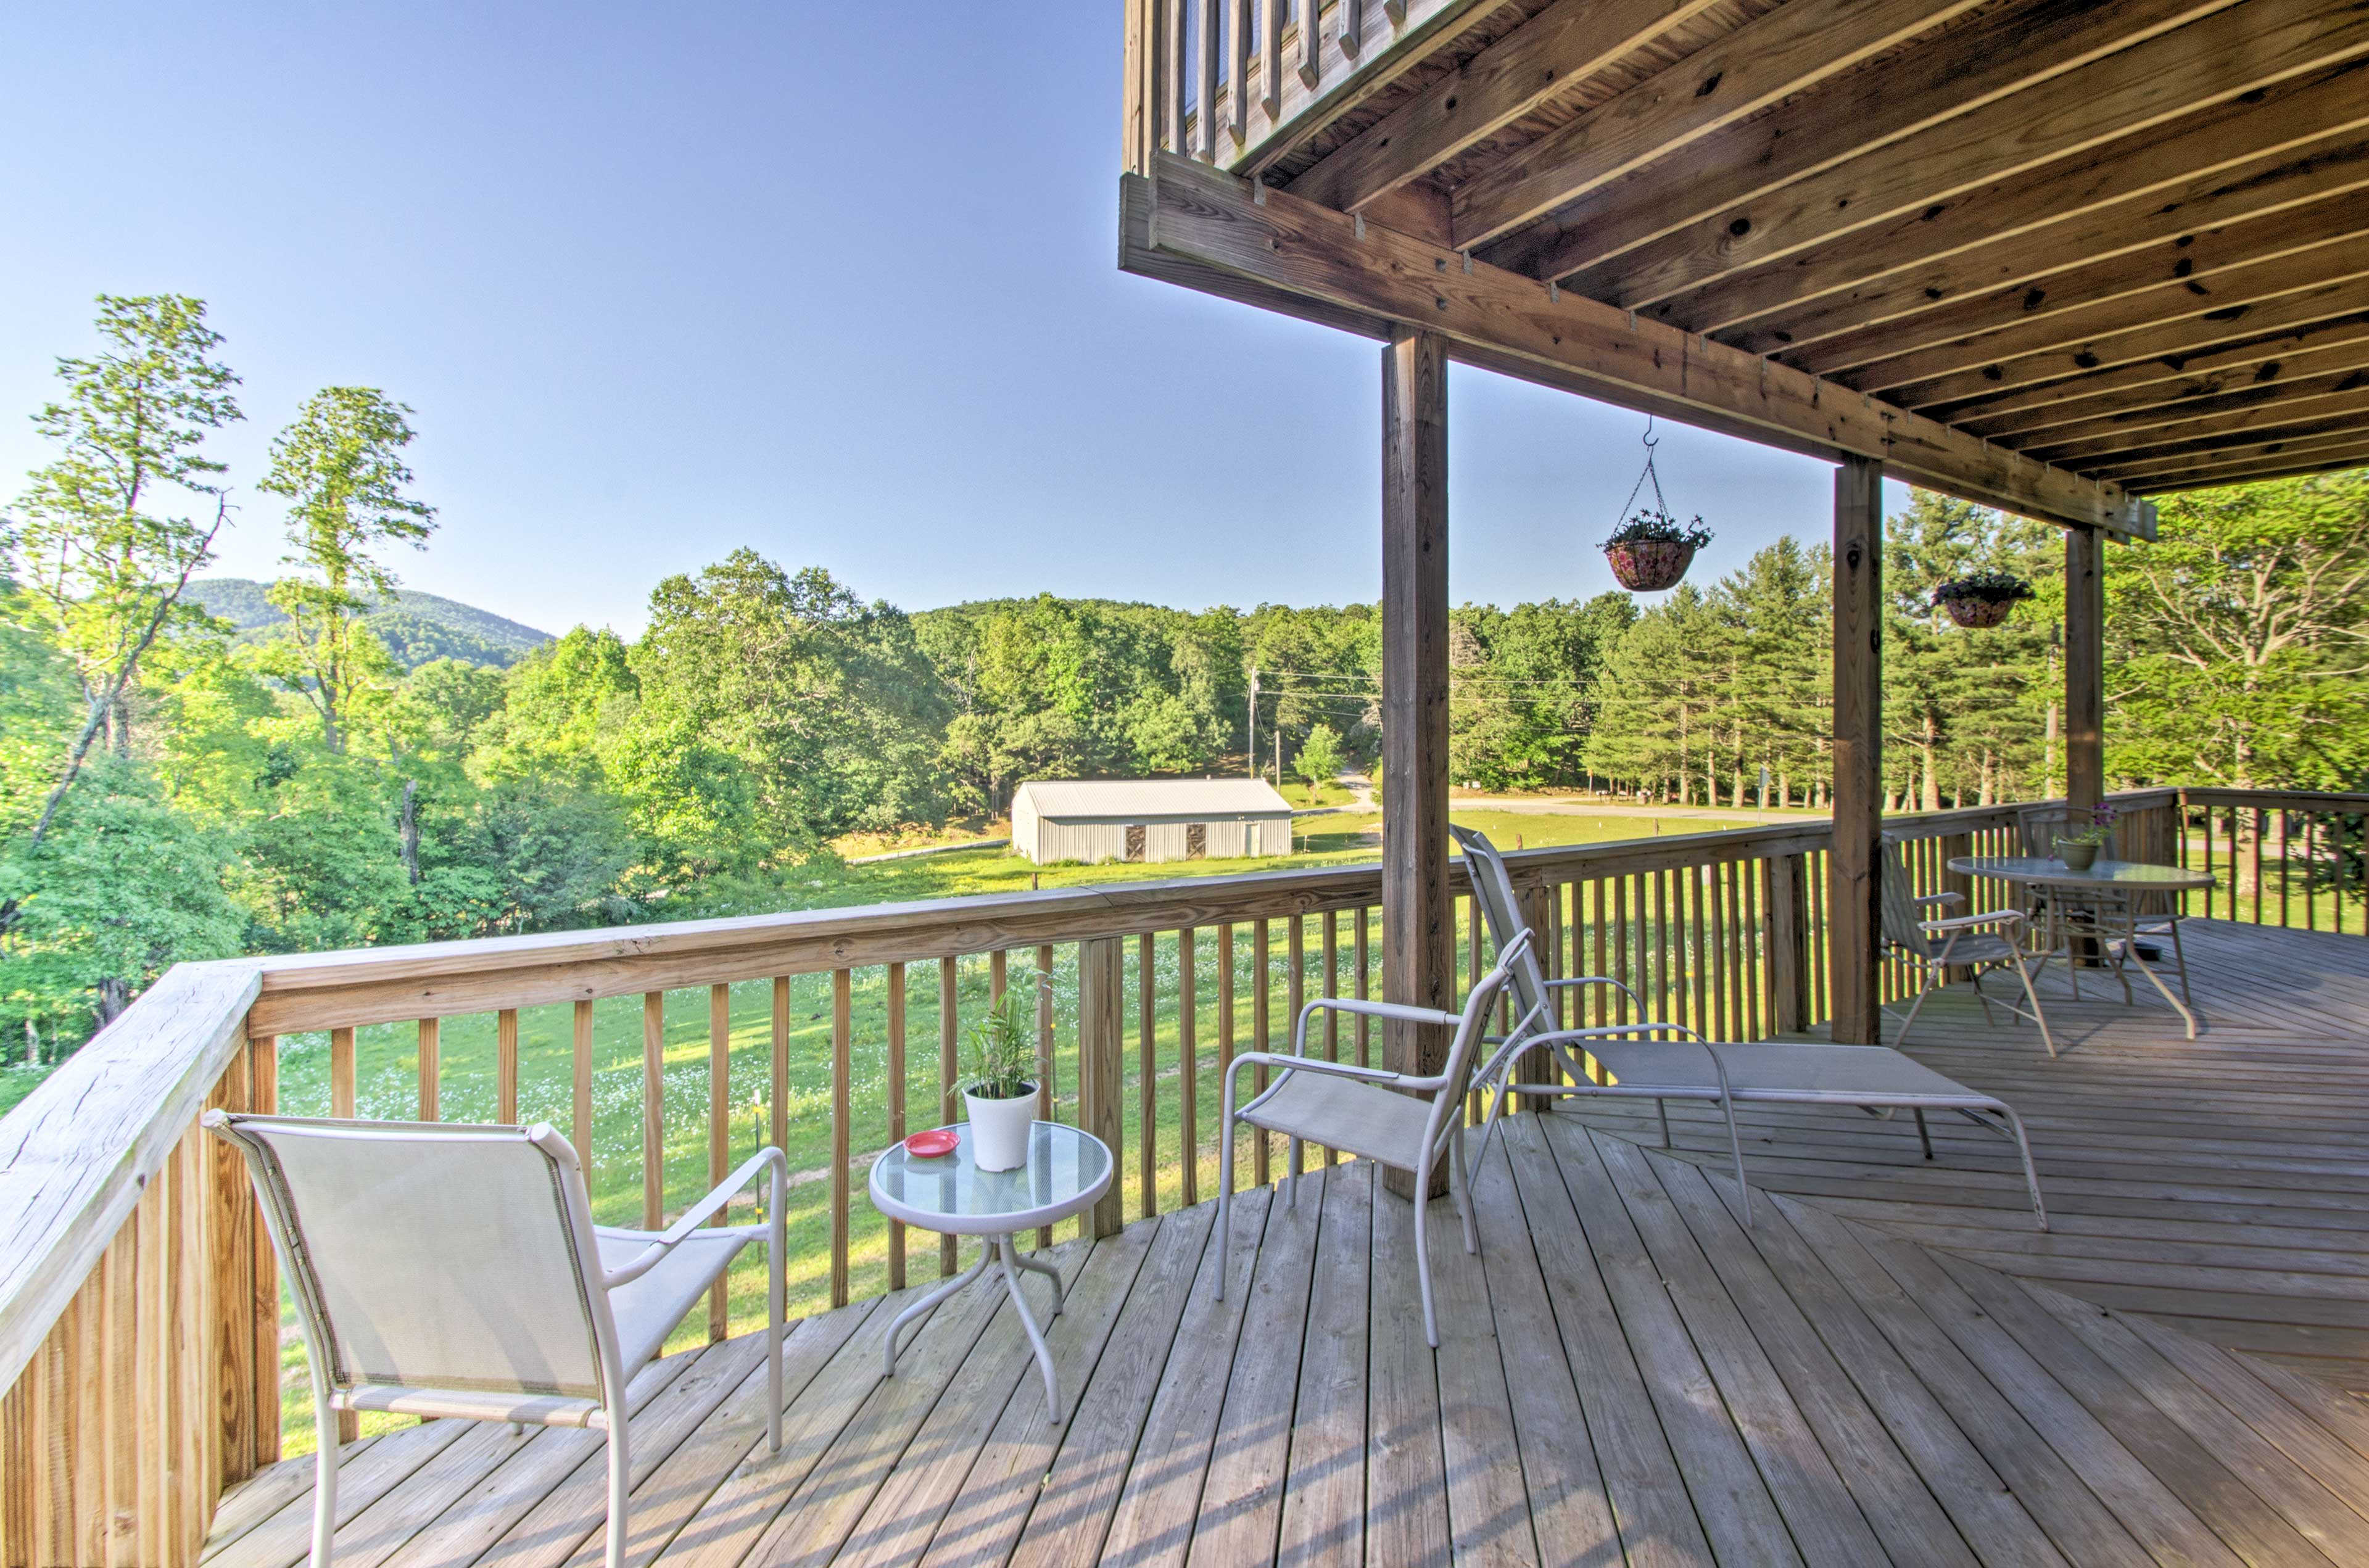 Enjoy the views from your spacious, furnished deck.